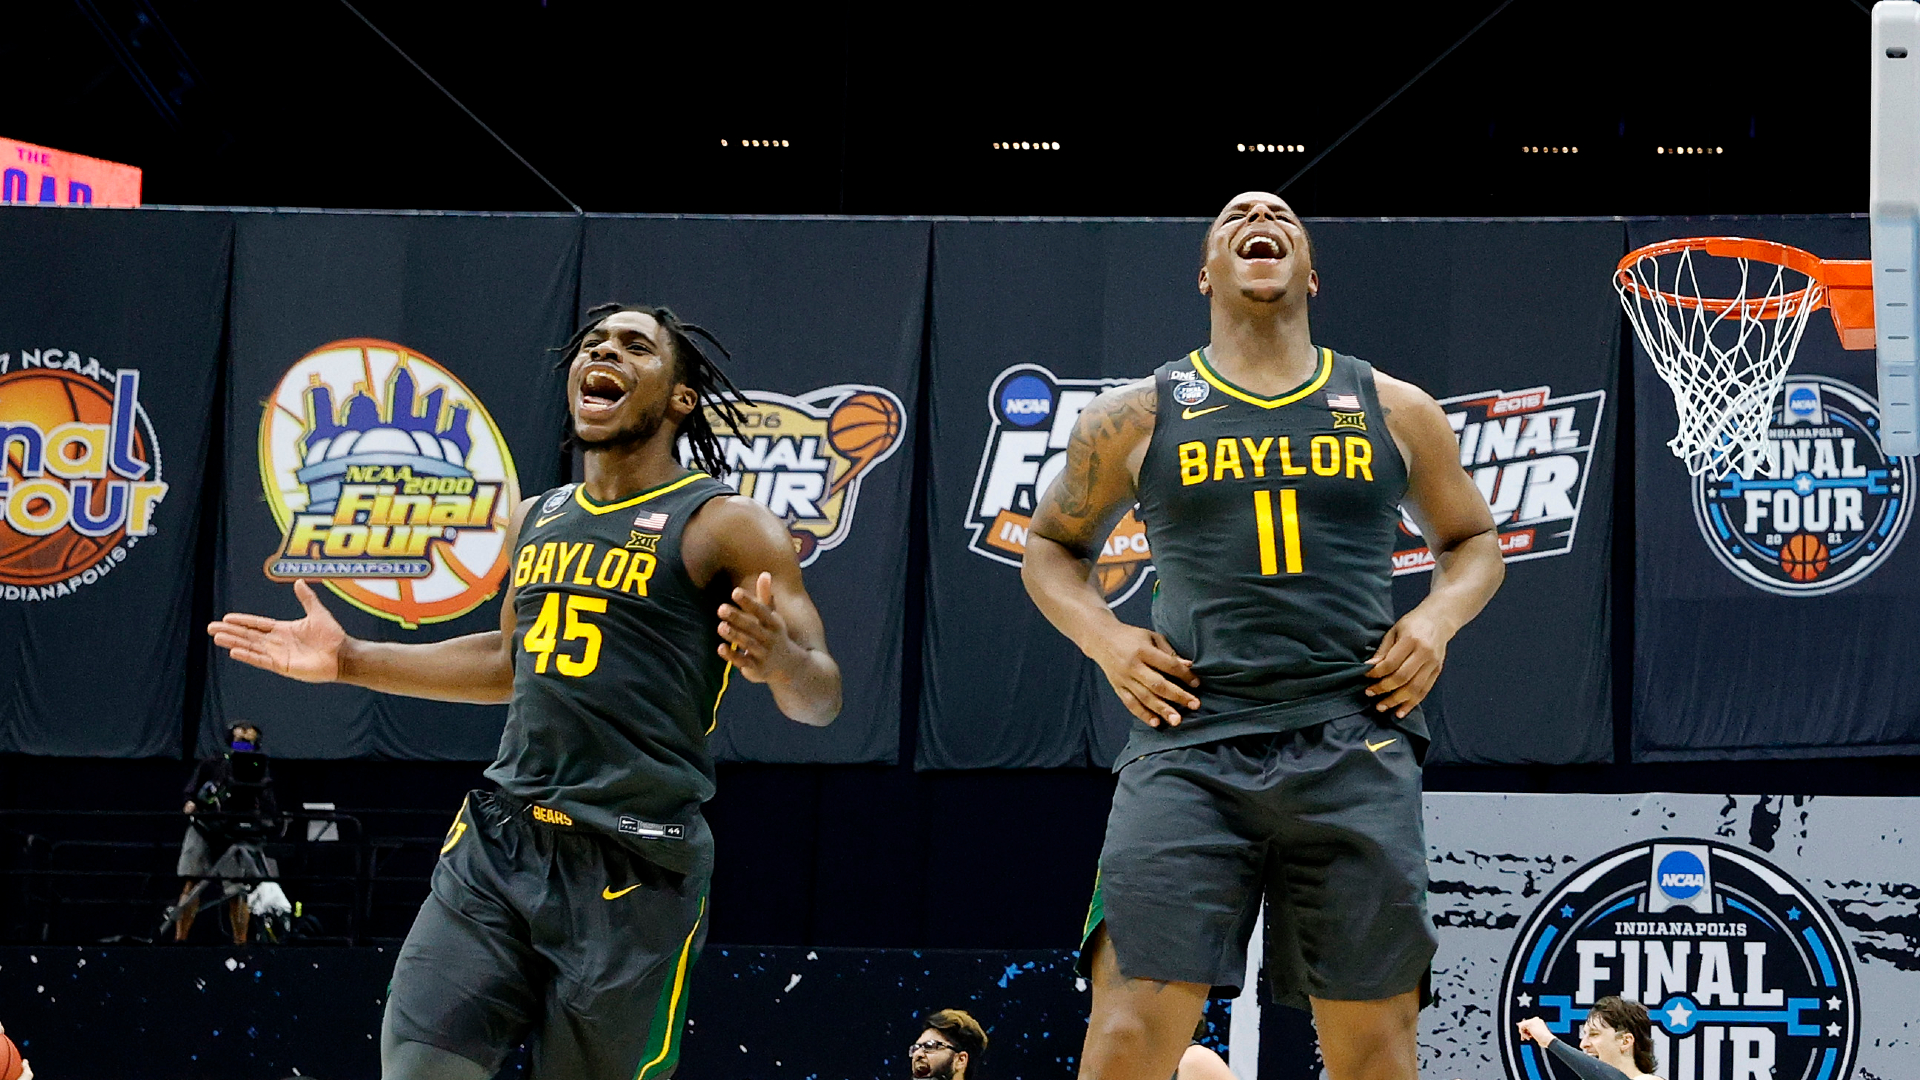 Baylor ends Gonzaga's perfect season with Texas-sized story books